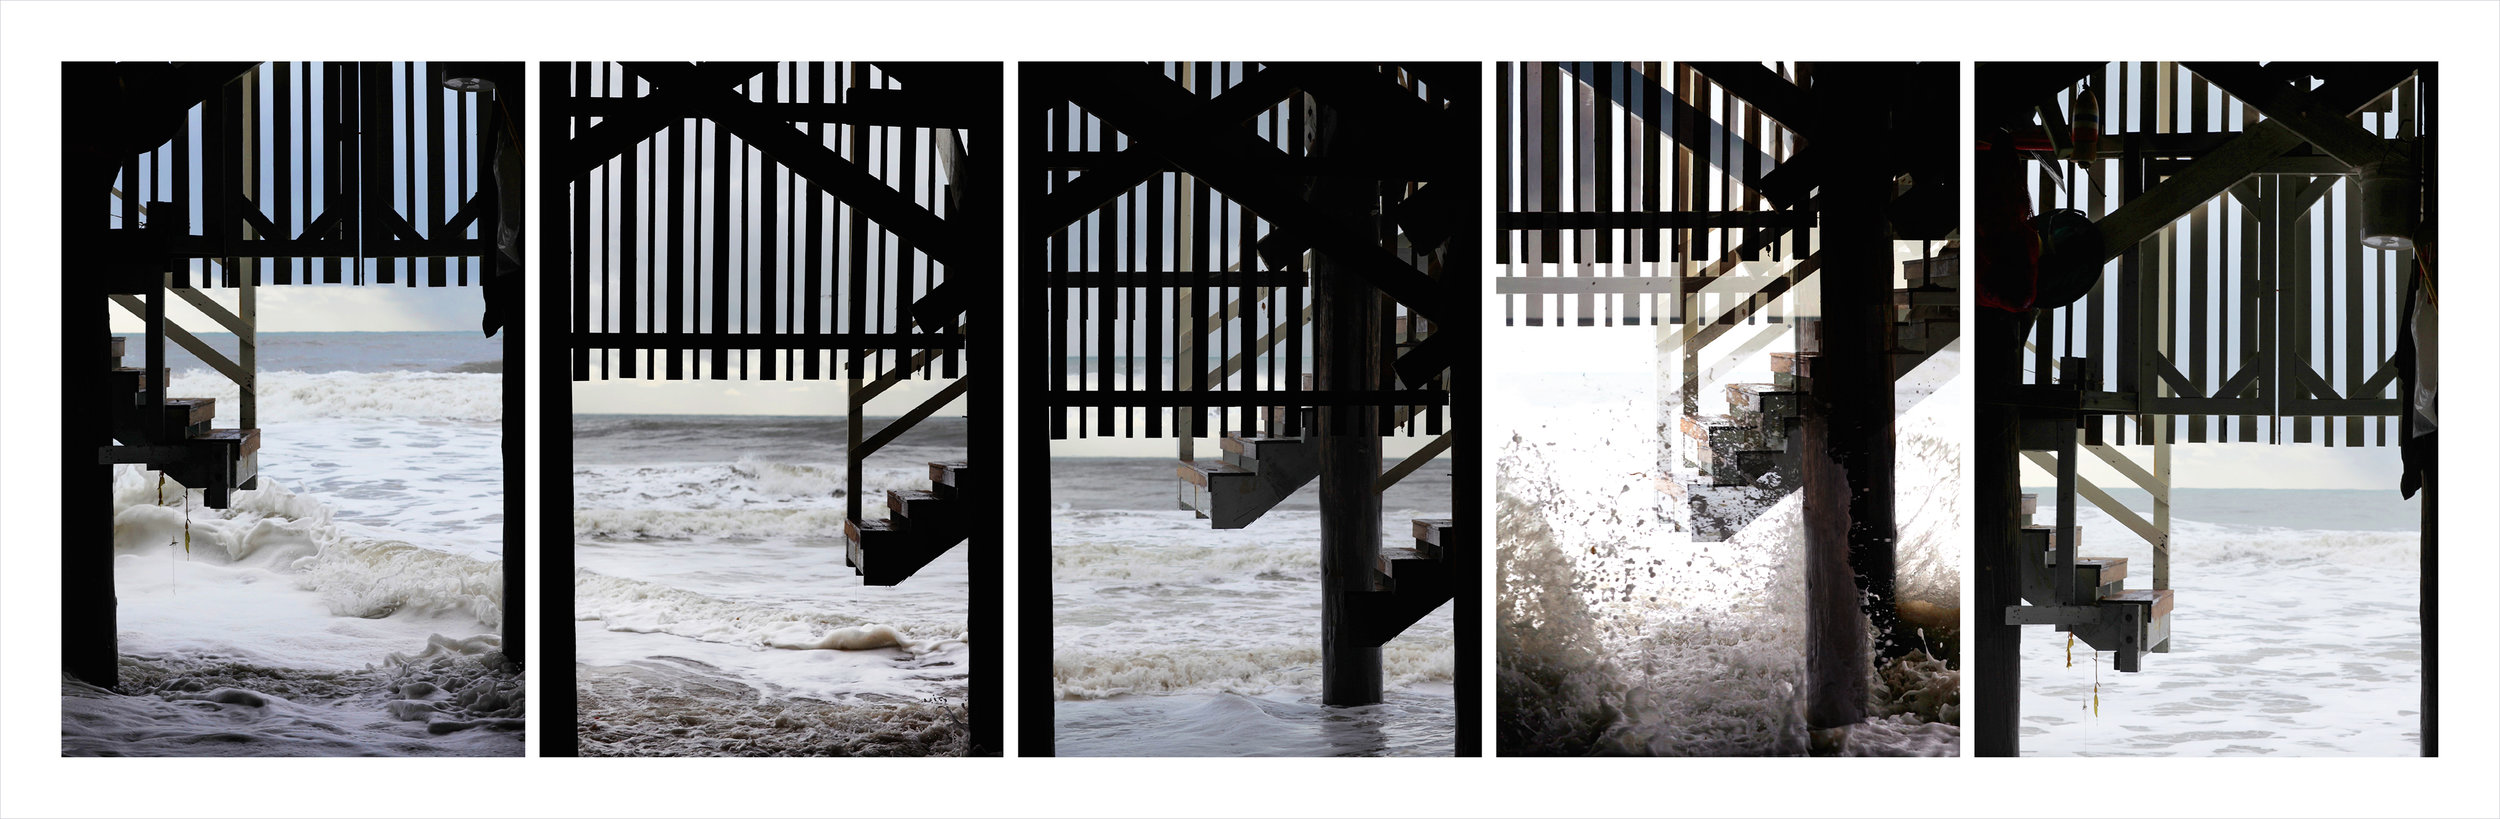 Untitled #32   (Nowhere)  , 2012/ archival pigment   print, 14  x 43 inches  ,  edition of 3 plus 2 AP